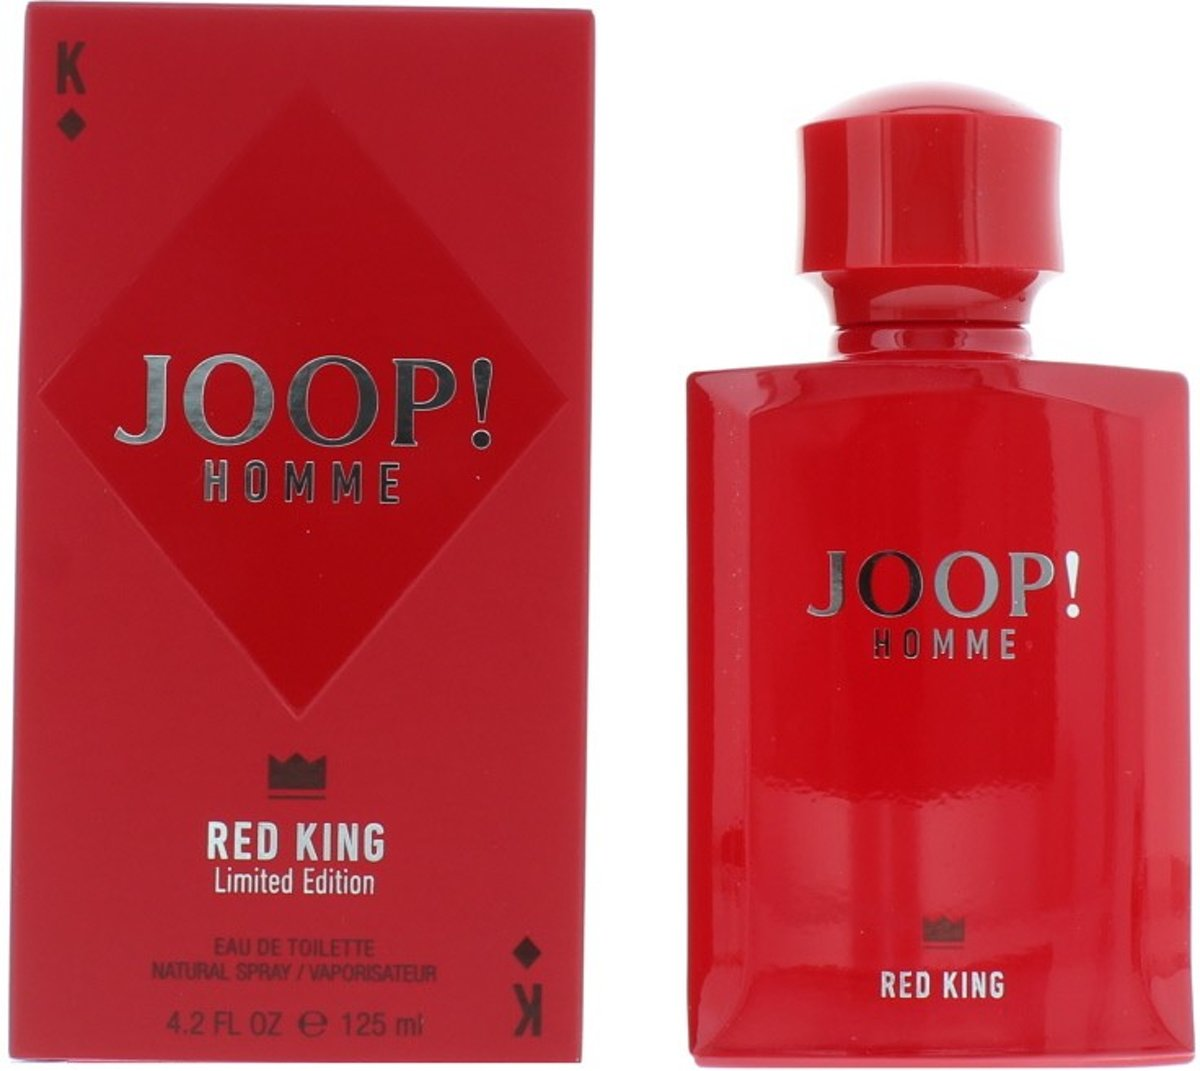 Joop! Homme Red King - 125ml - Eau de toilette